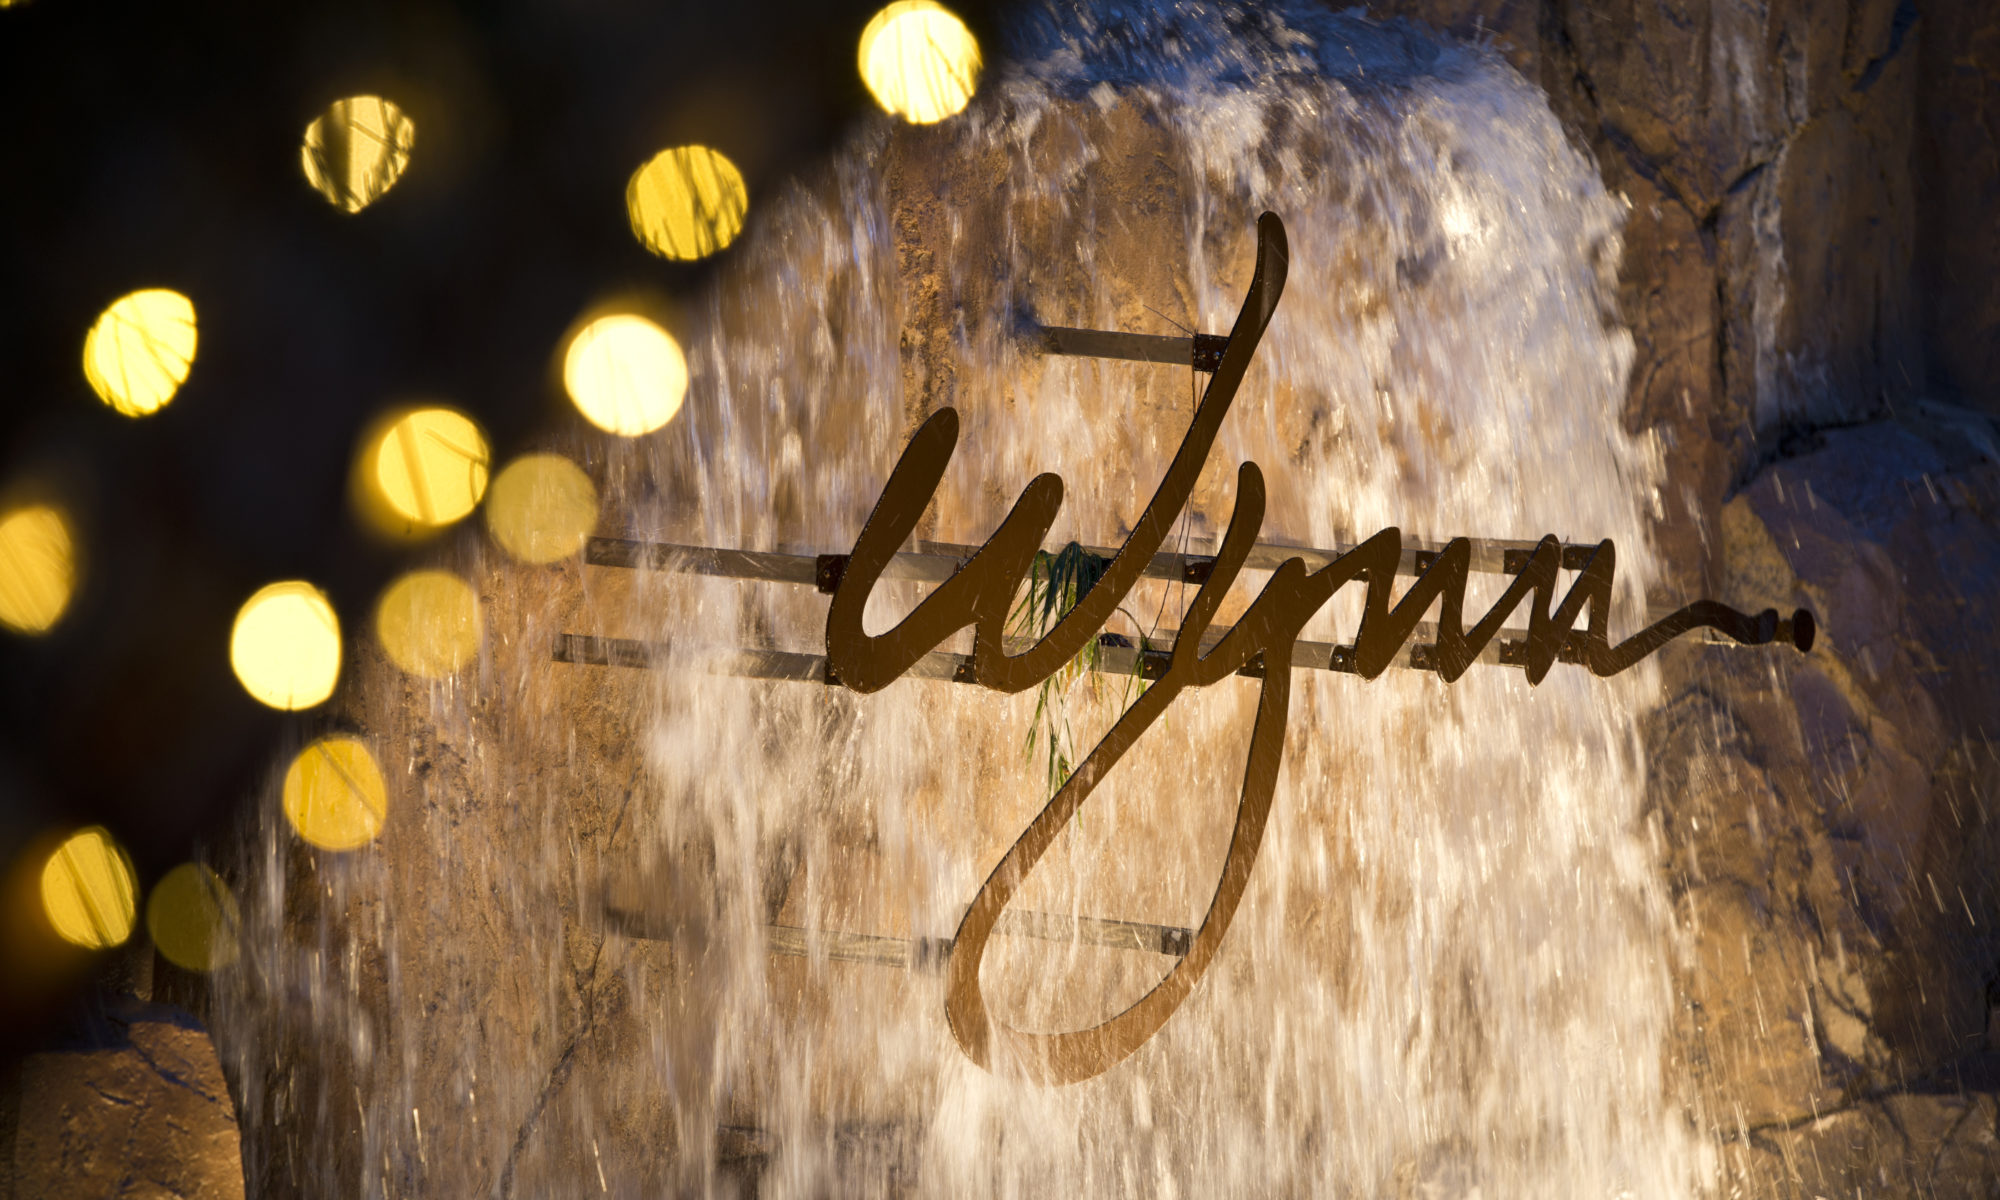 A fountain a the Wynn Resorts with the company name on the front